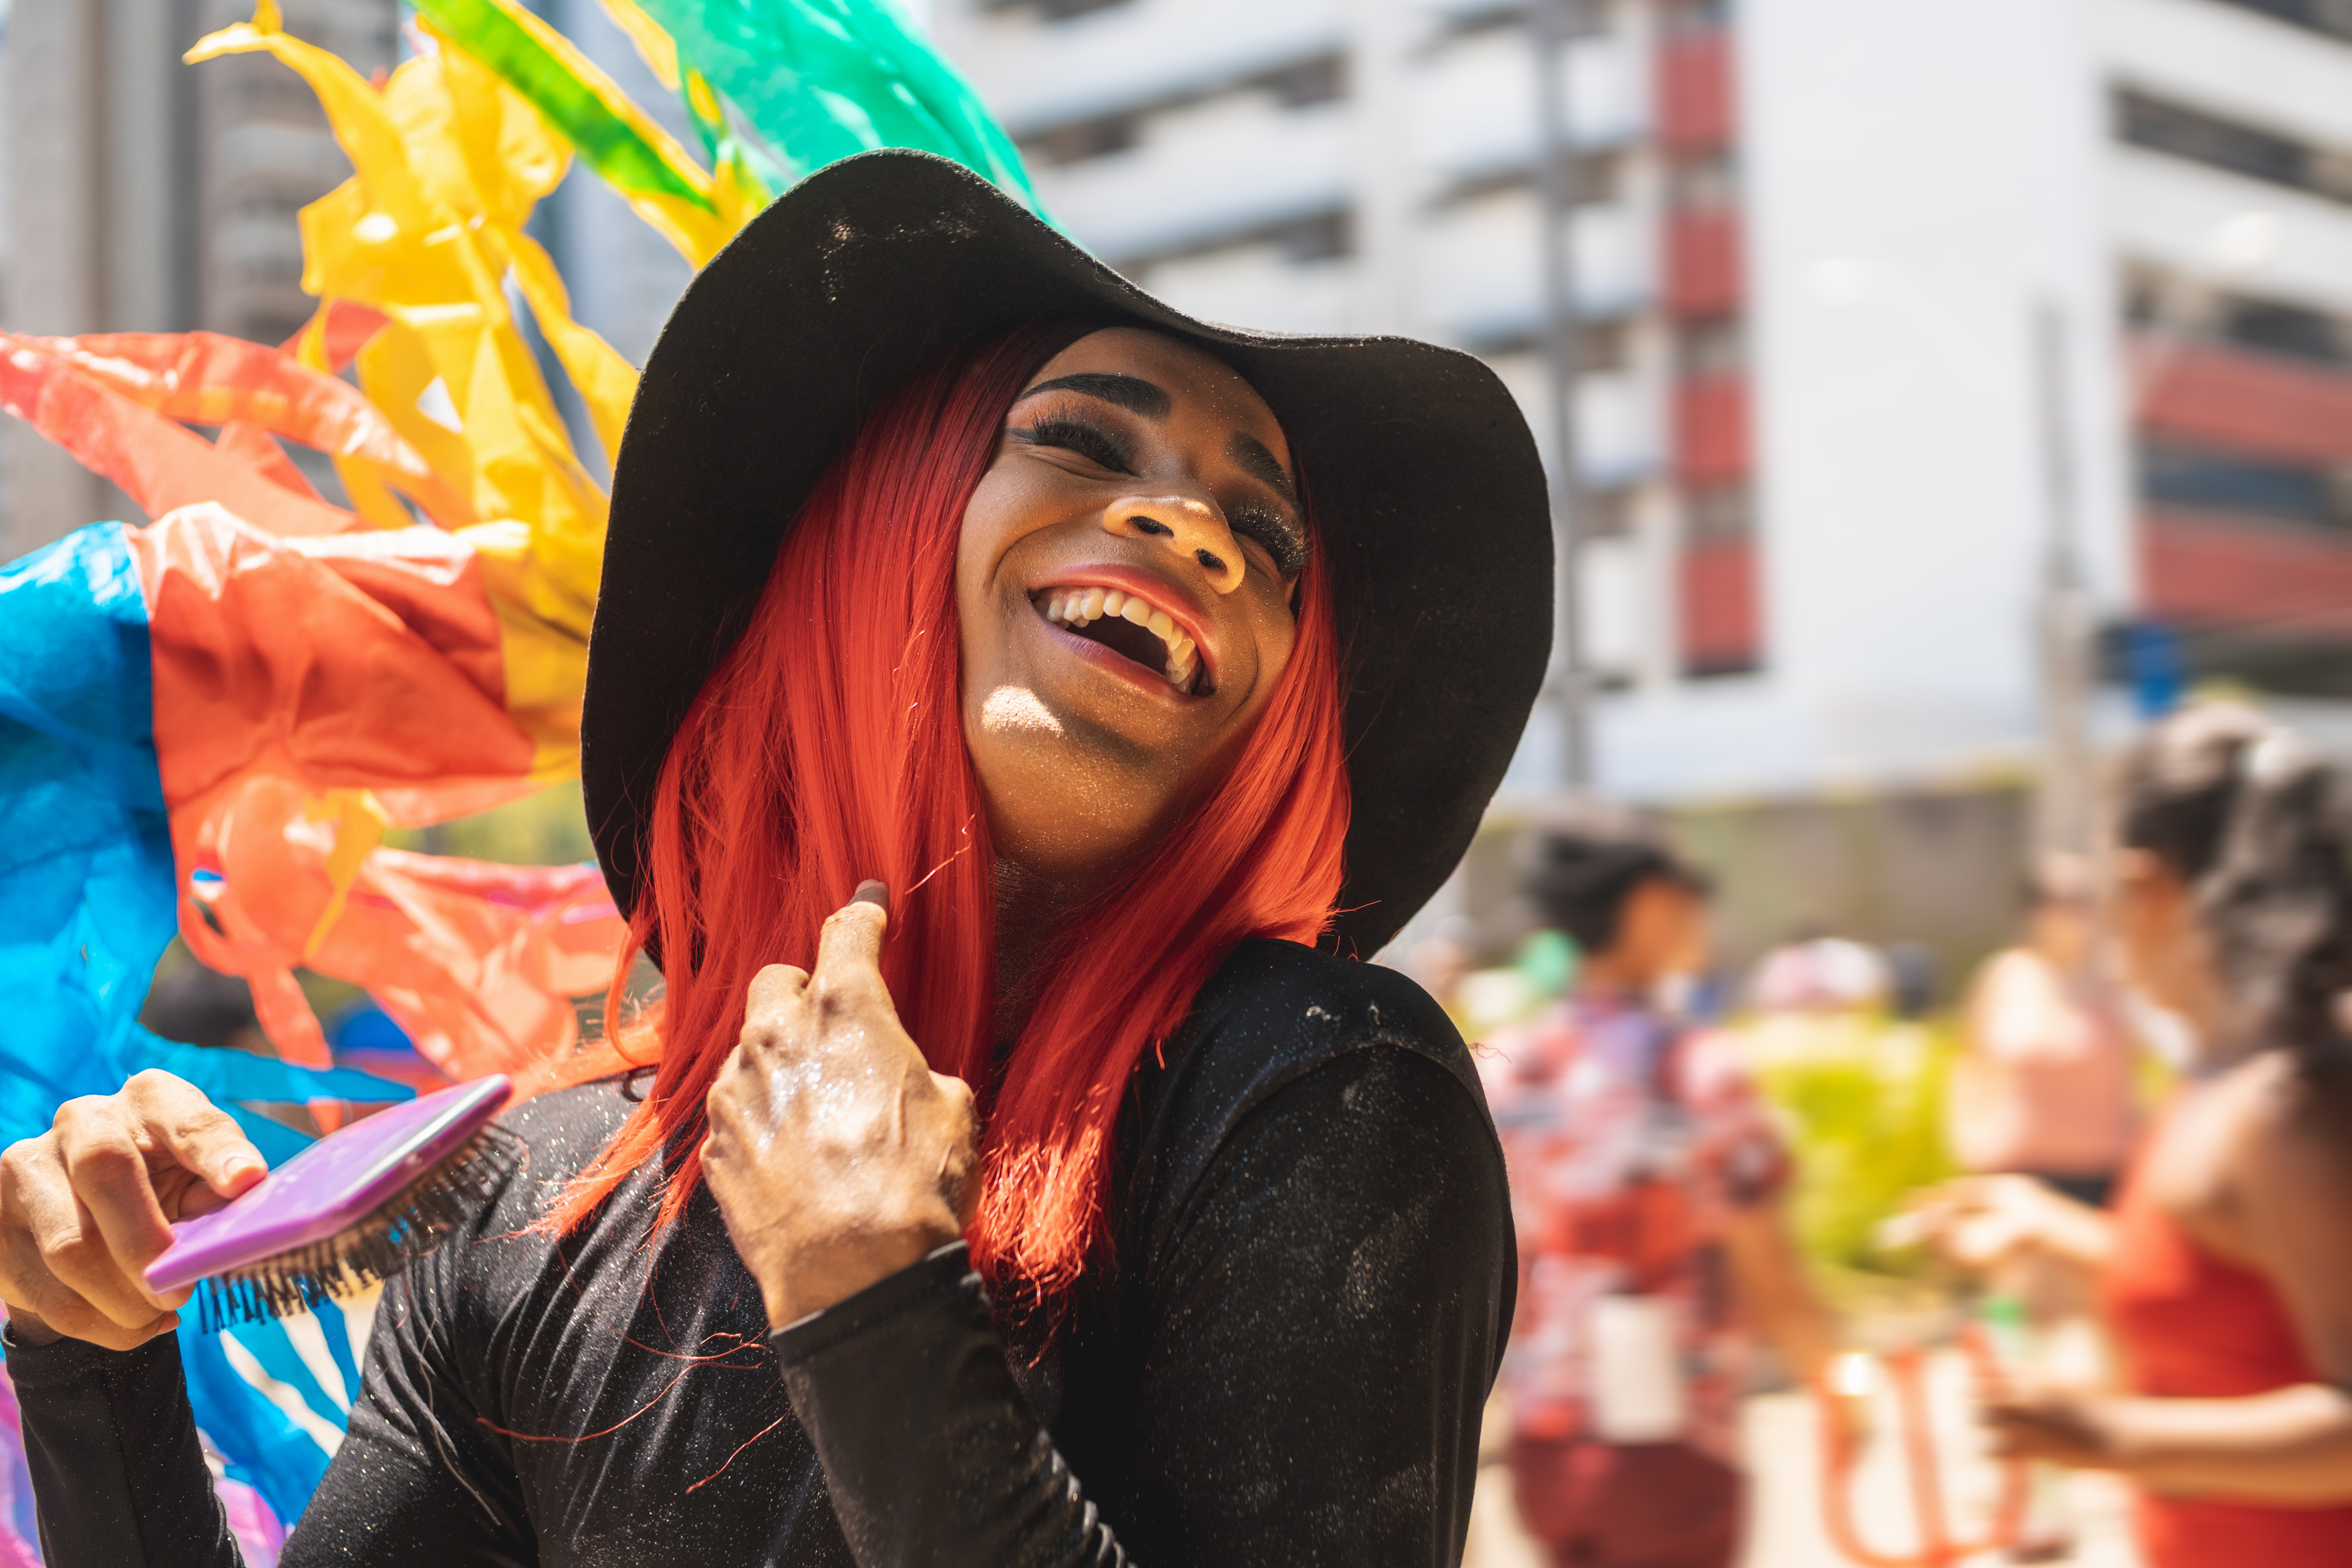 A queer person throws their head back smiling at a gay pride parade